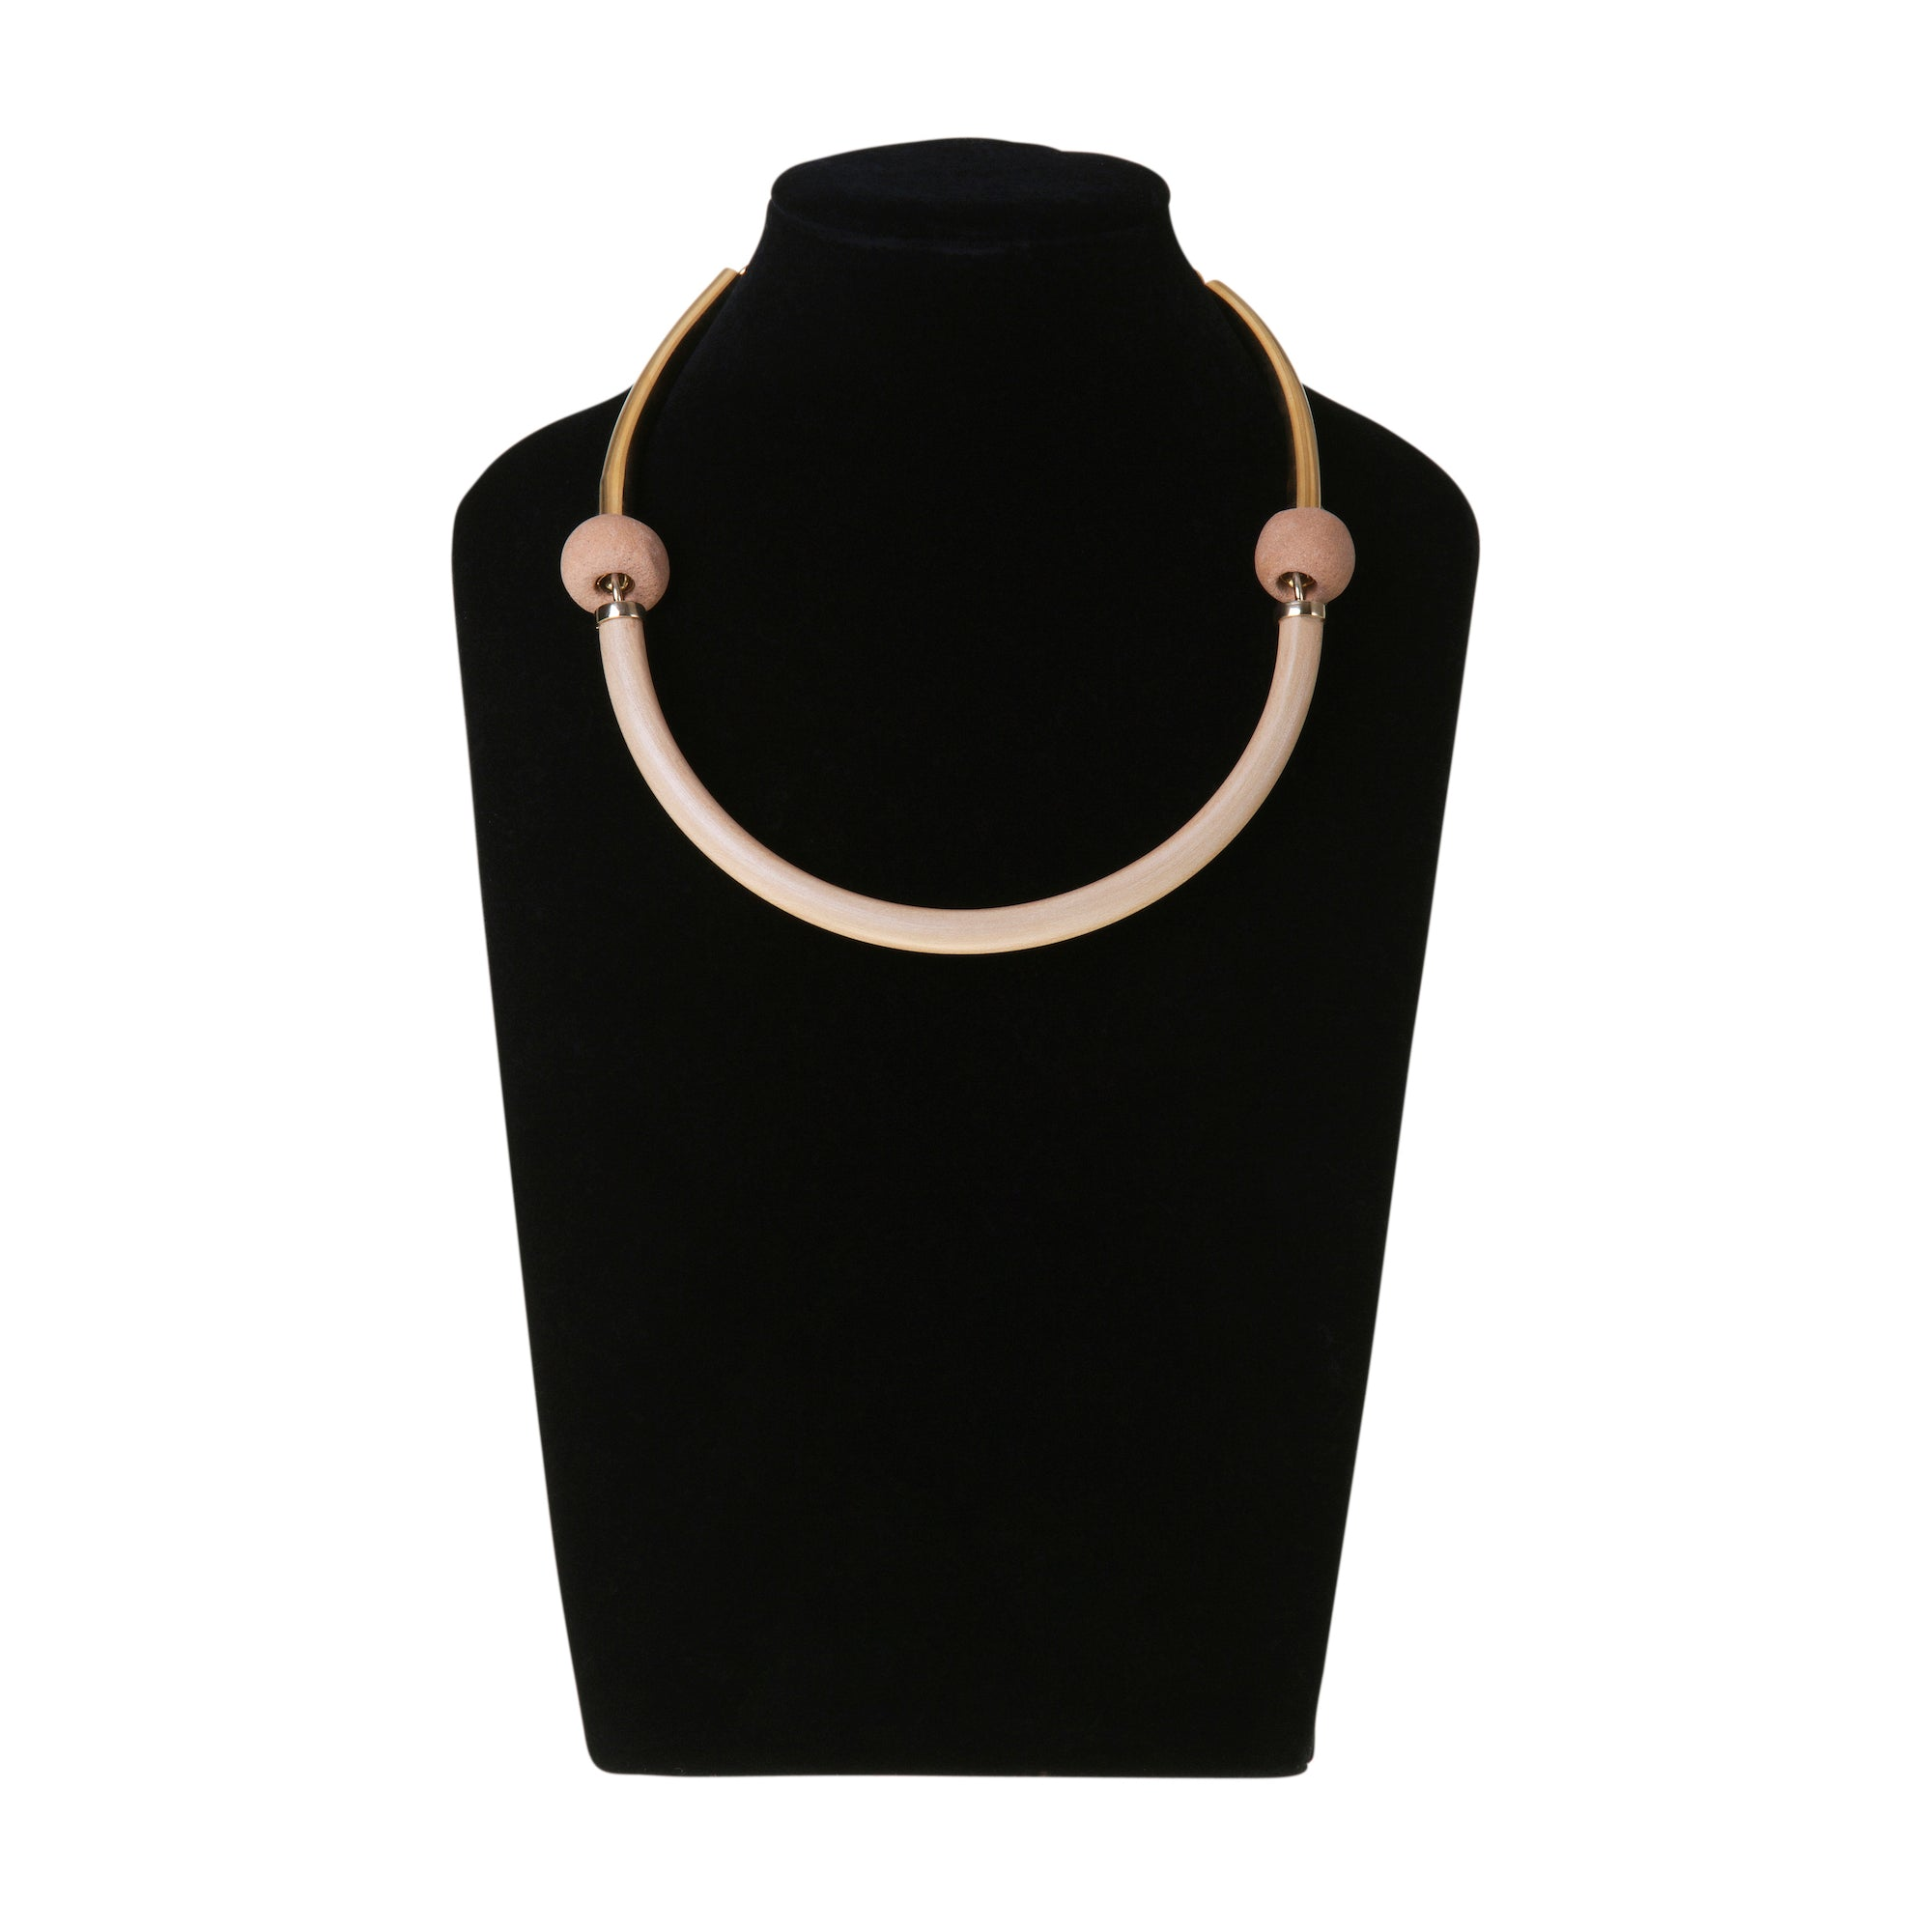 OKAME NECKLACE BLACK by Henriette Botha at SARZA. accessories, Henriette Botha, jewellery, jewelry, necklaces, OKAME